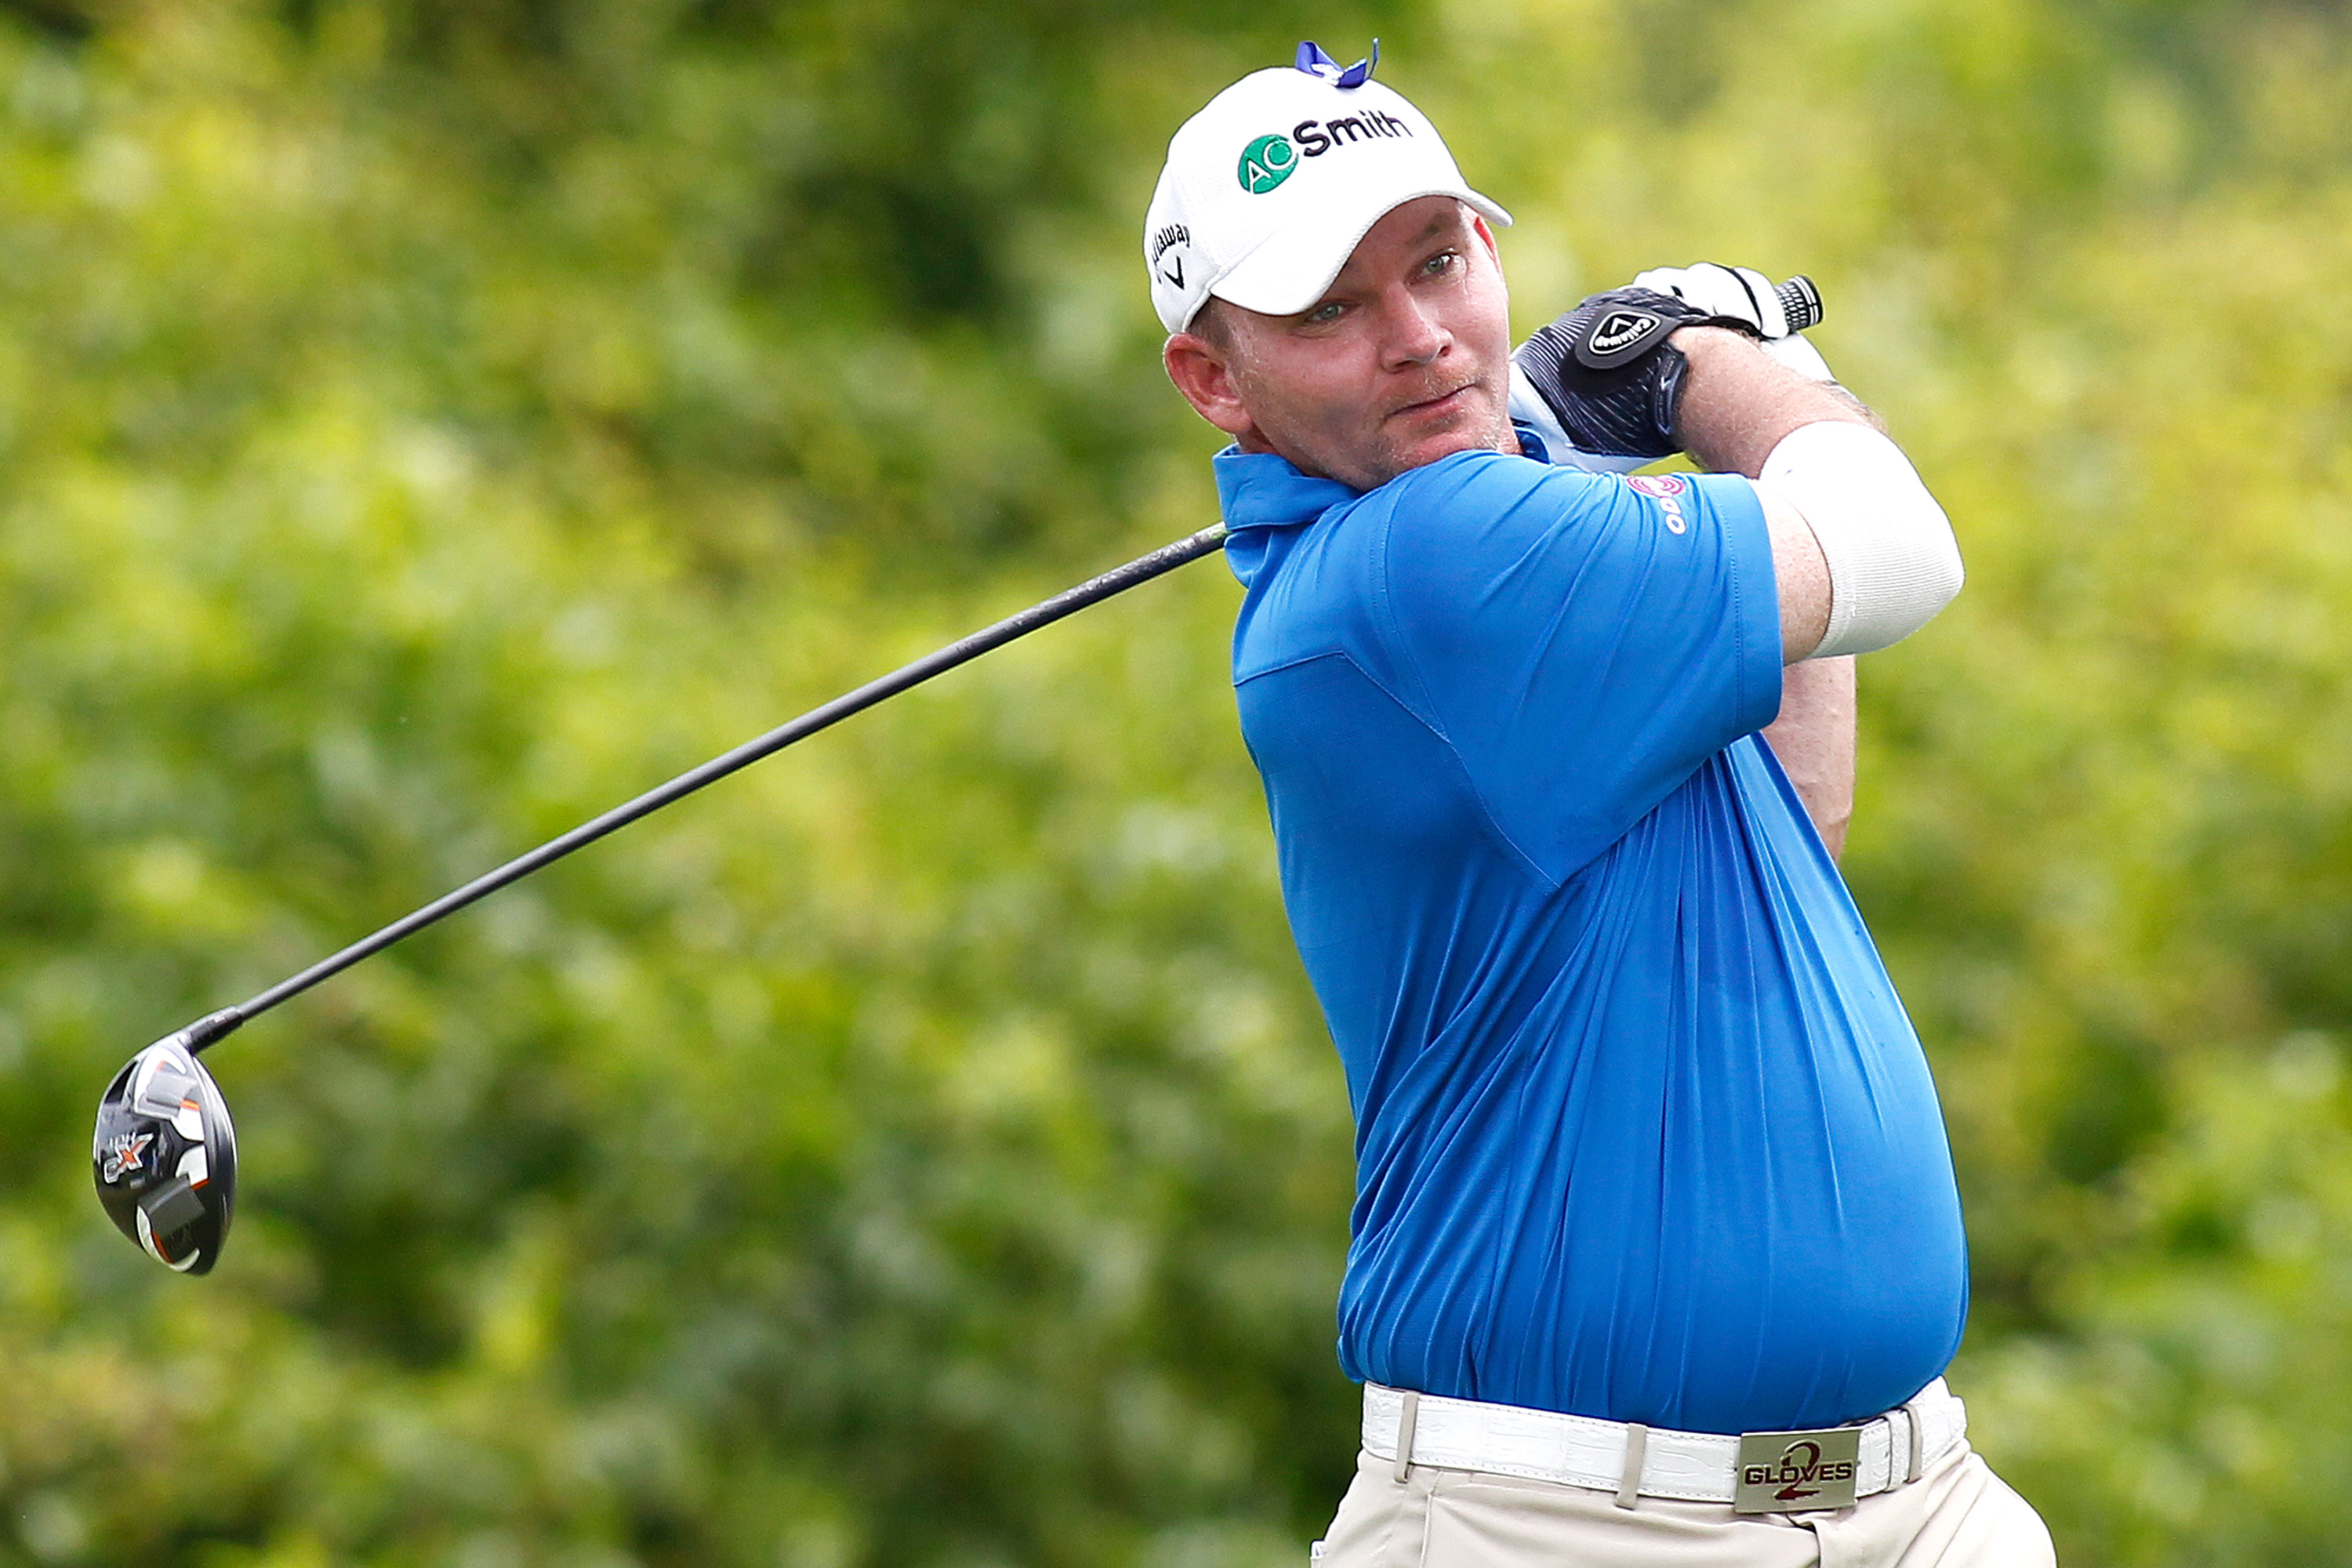 """Pro golfer Tommy """"Two Gloves"""" Gainey faces a first-degree misdemeanor solicitation charge after being arrested for soliciting a prostitute."""